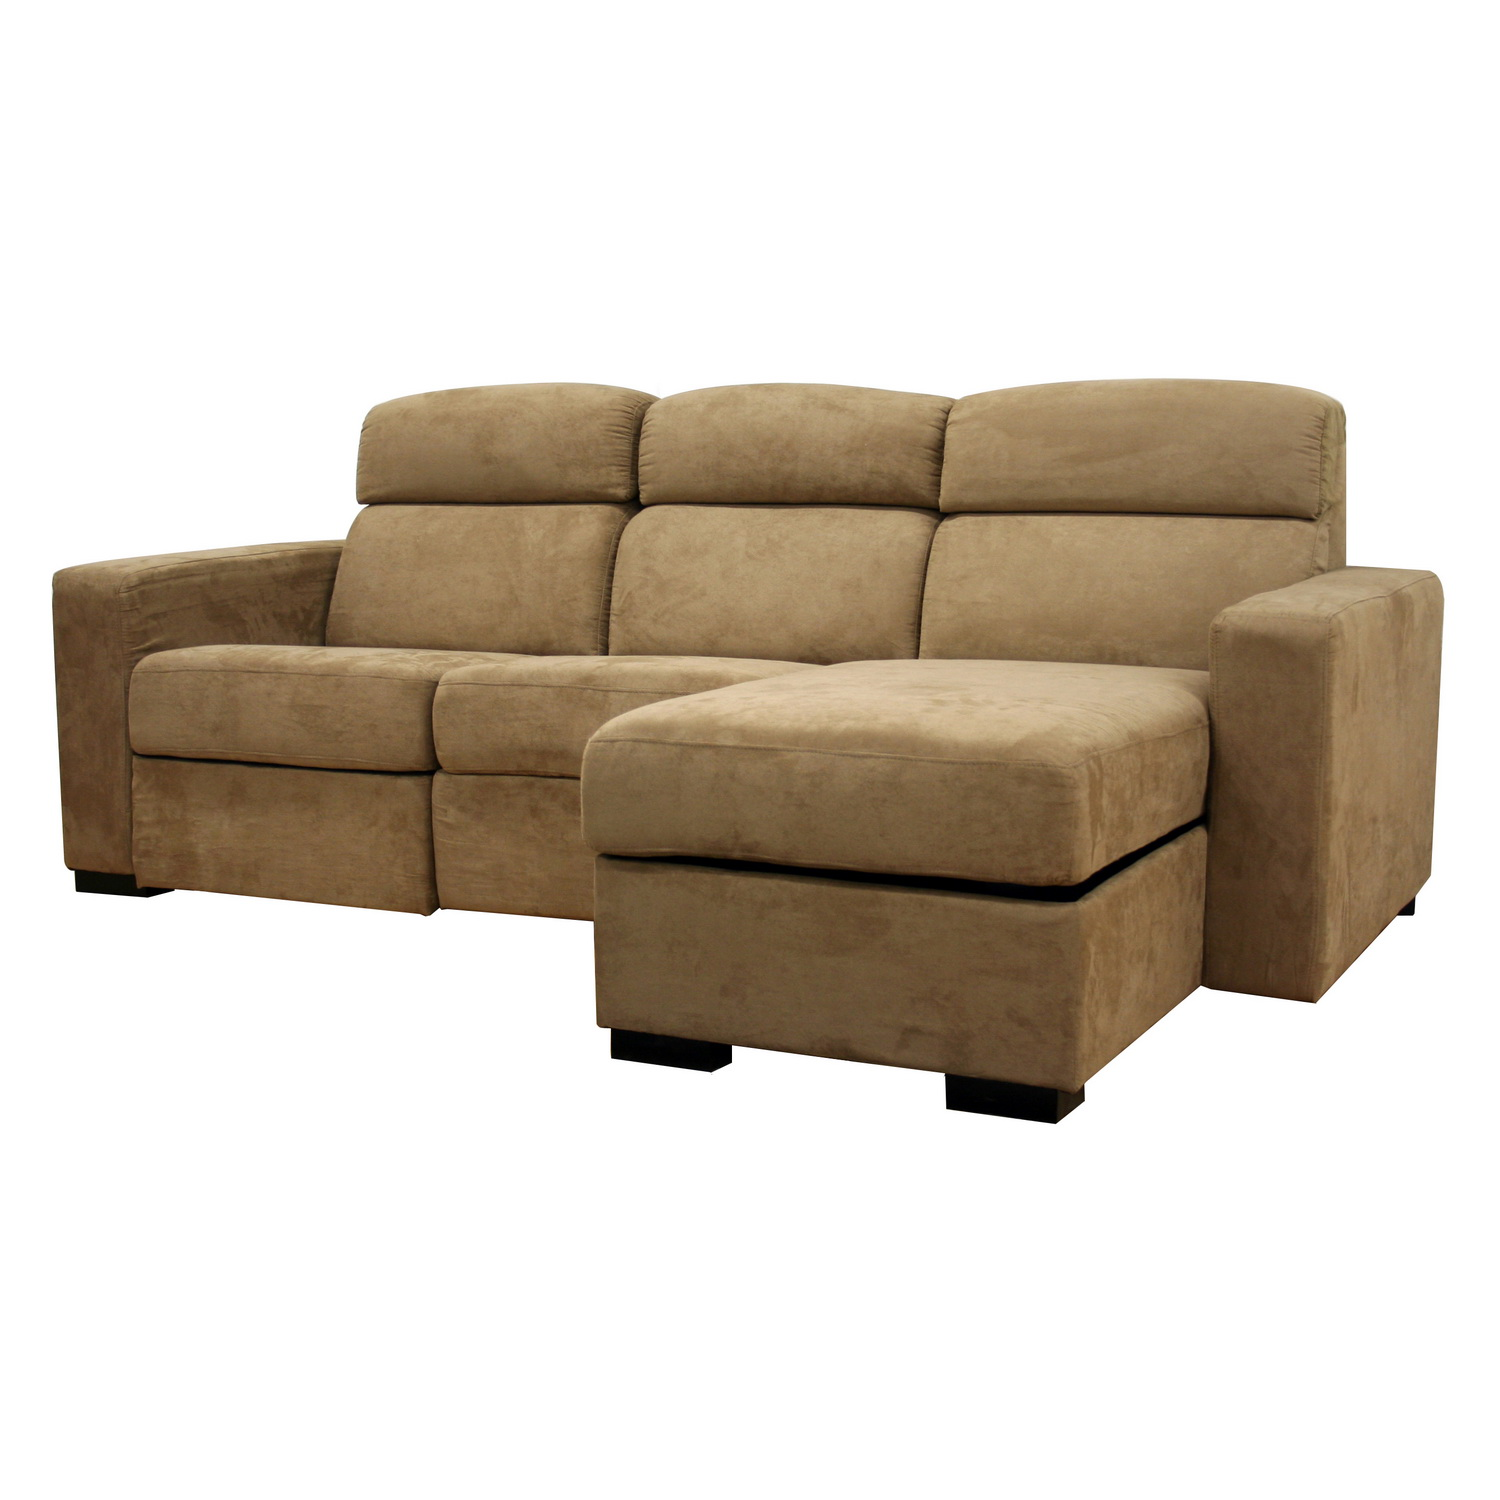 Sectional sofa with chaise recliner and sleeper for Chaise and recliner